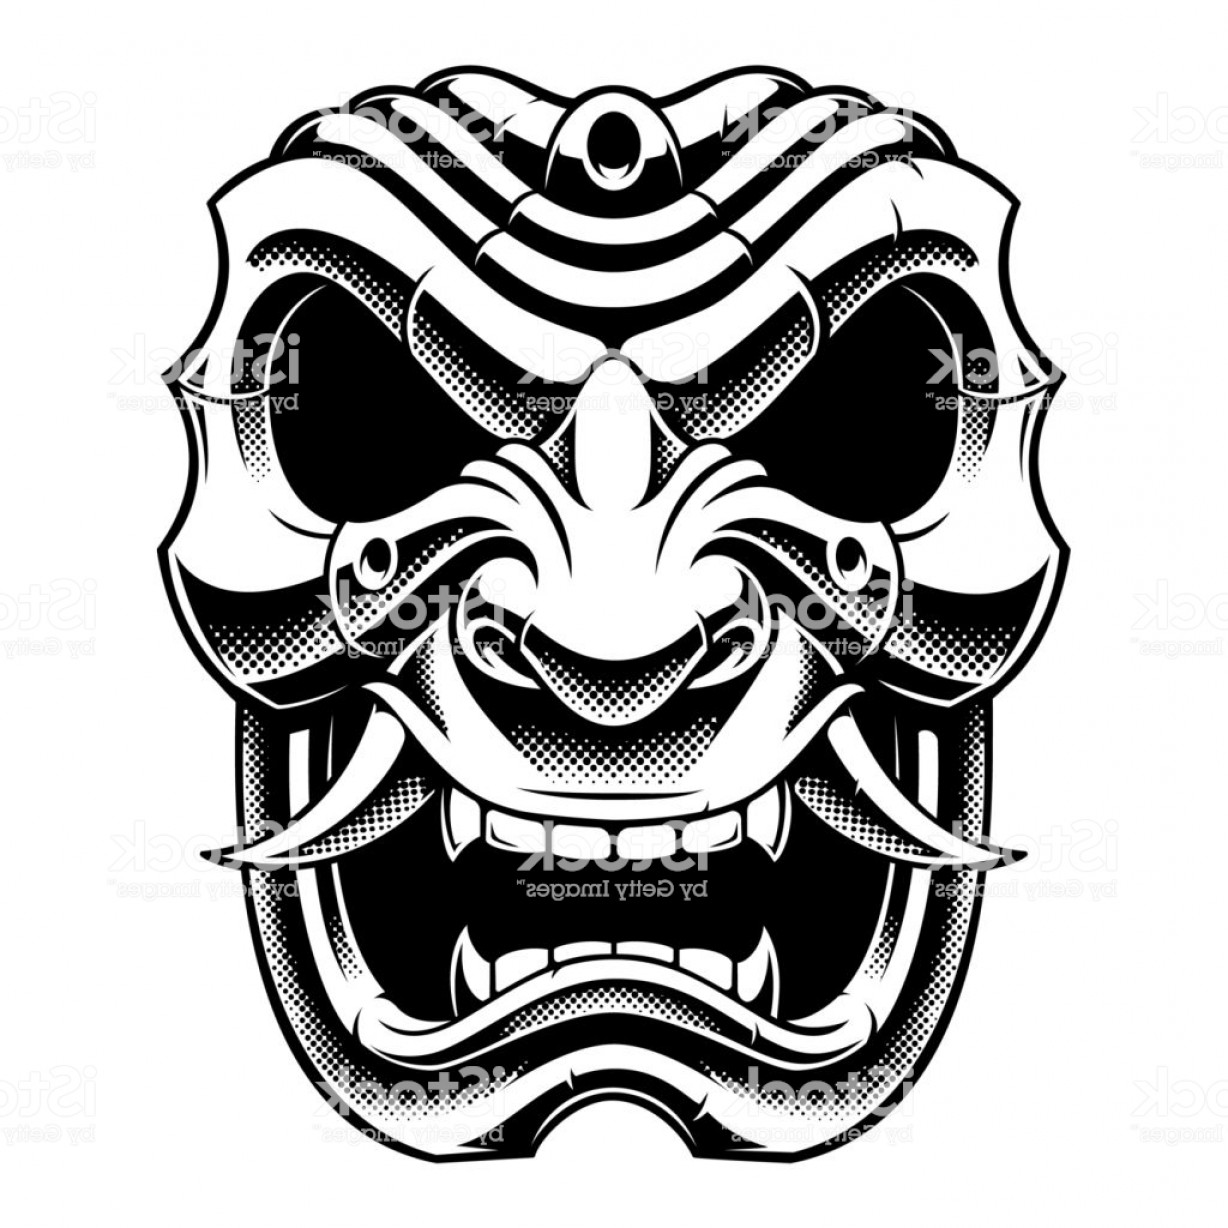 Samurai Warrior Vector: Samurai Warrior Mask Black And White Design Gm